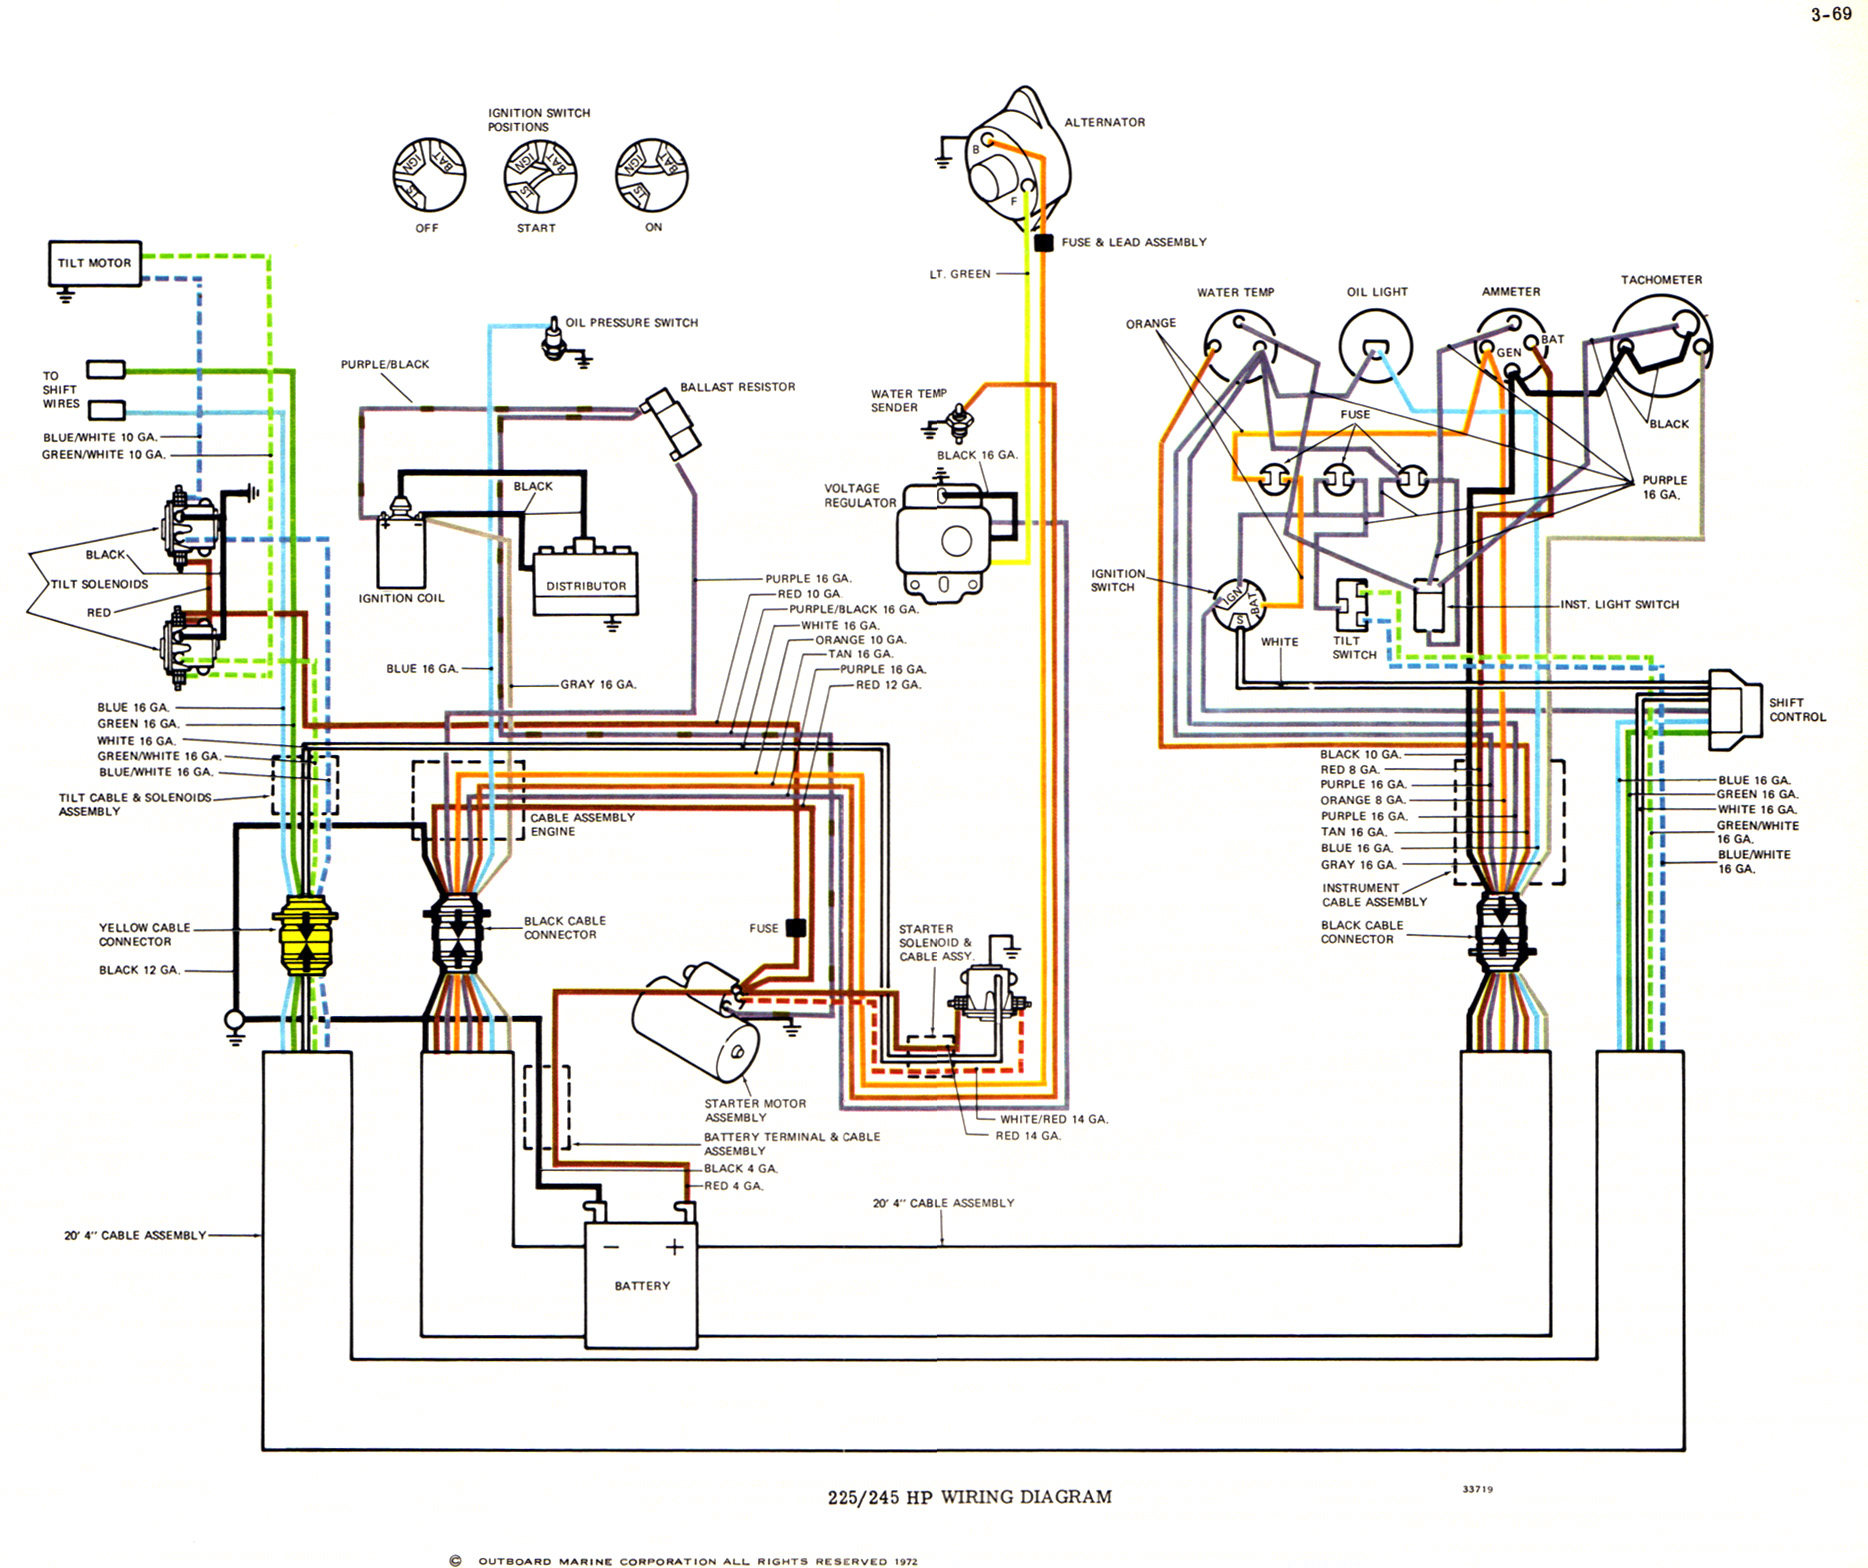 73_OMC_V8_all_big evinrude boats wiring � 2004 lee k shuster 302 wiring diagram at gsmx.co